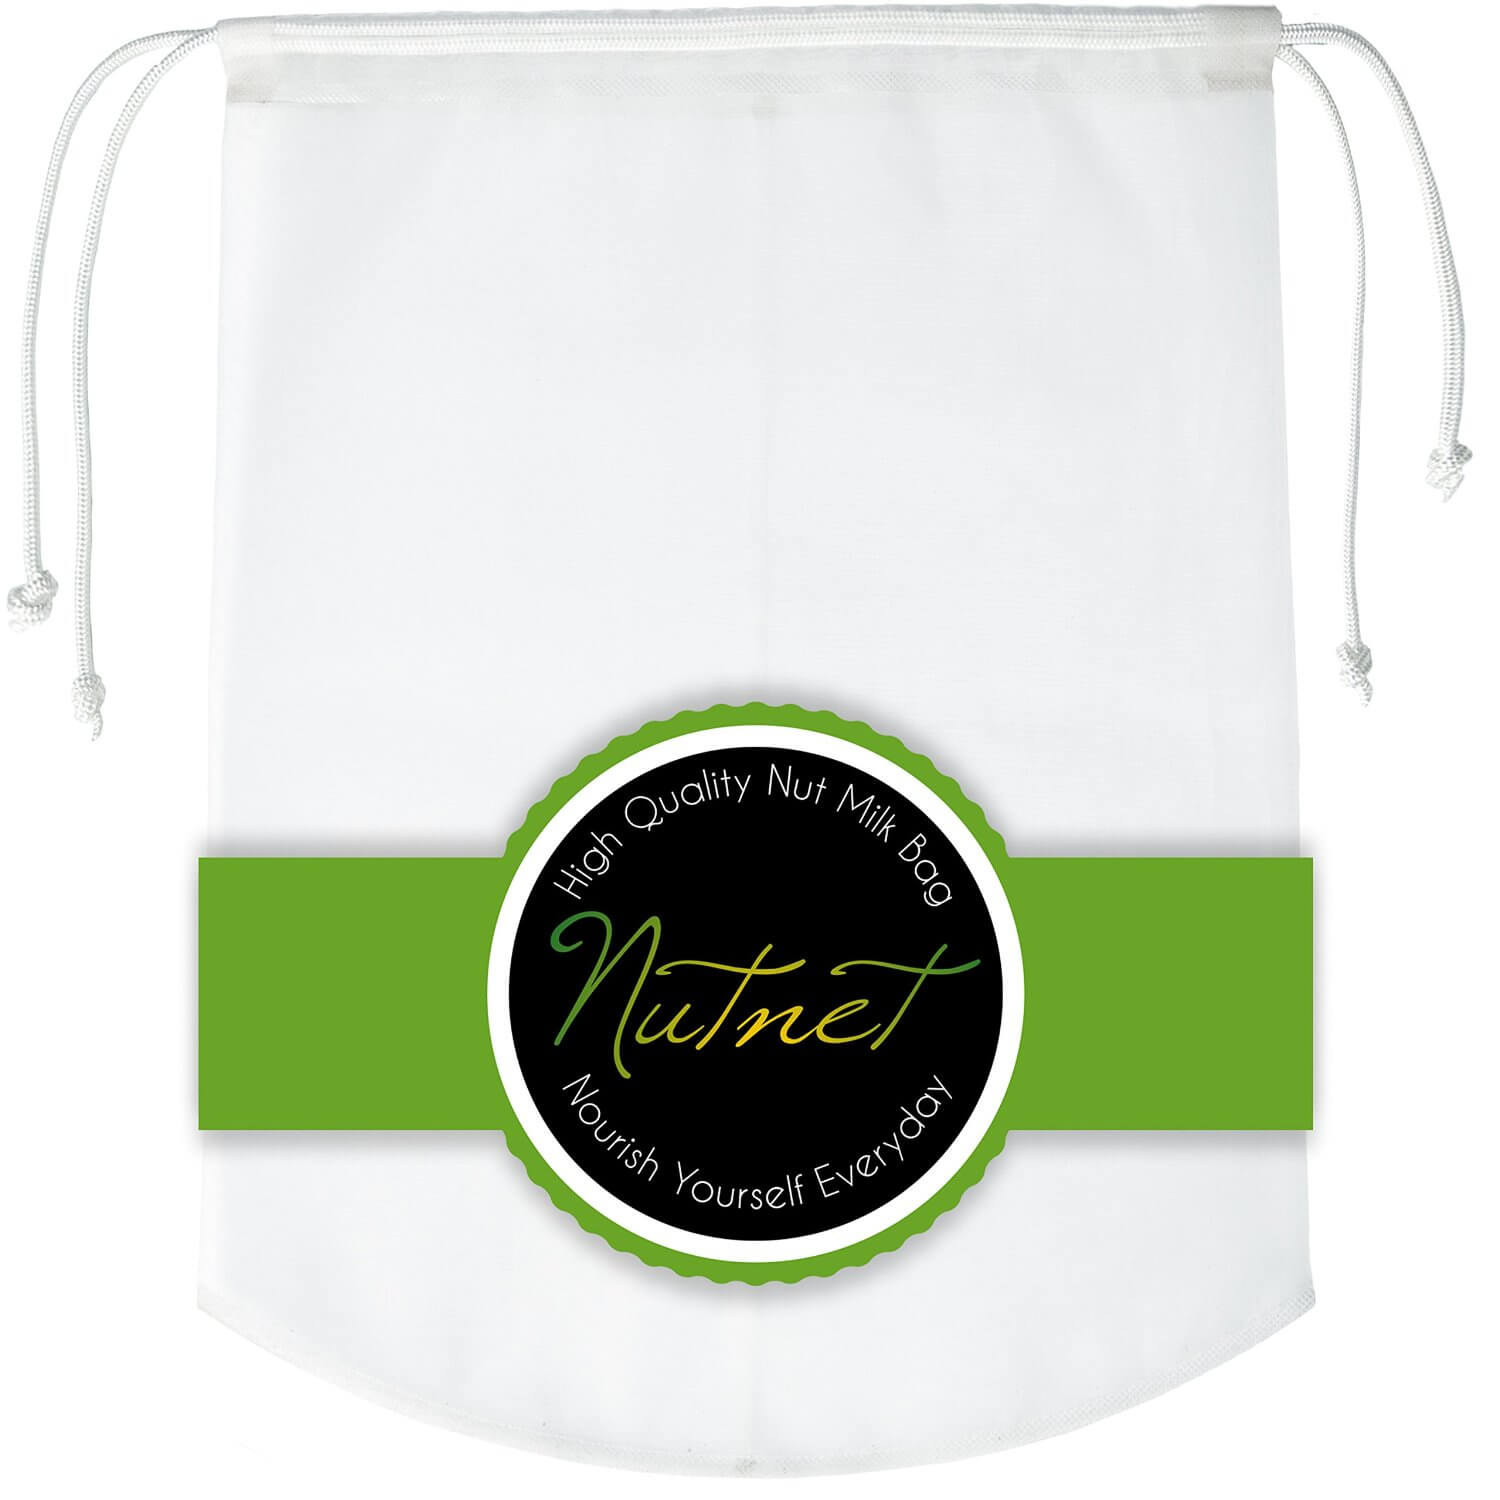 Nutnet Nut Milk Bag